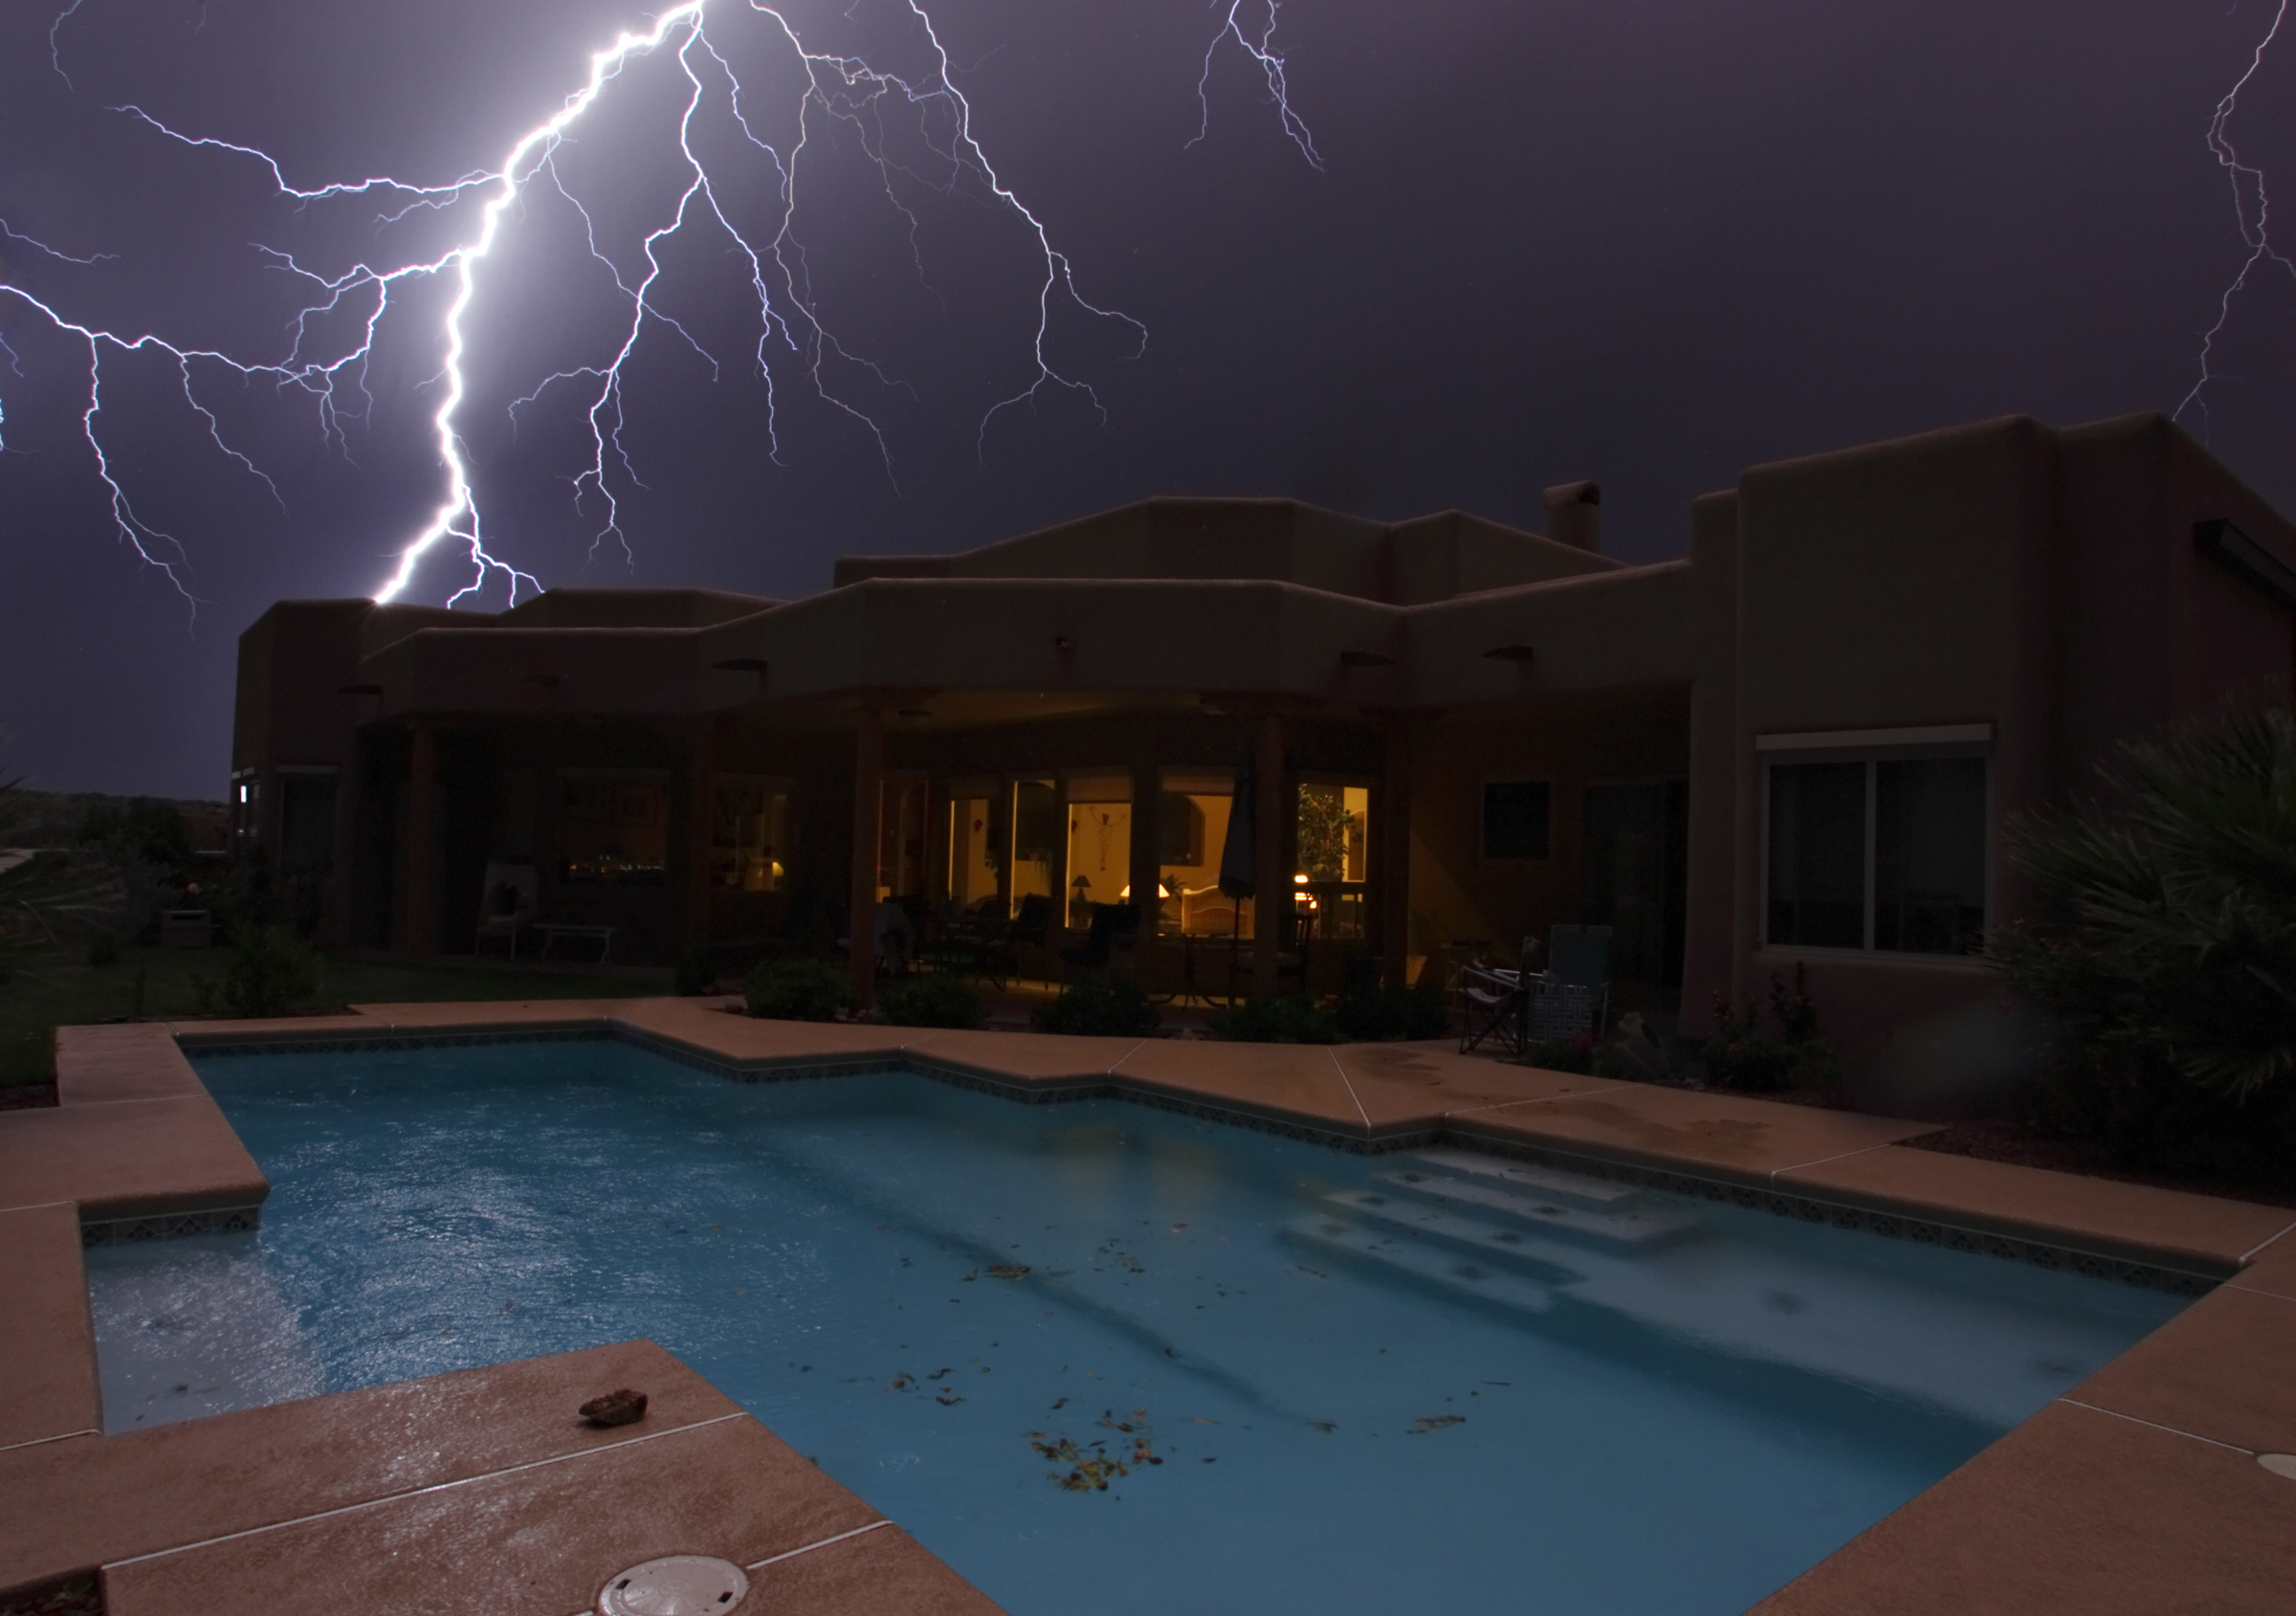 Storms & Water Safety - How to Stay Pool Safe